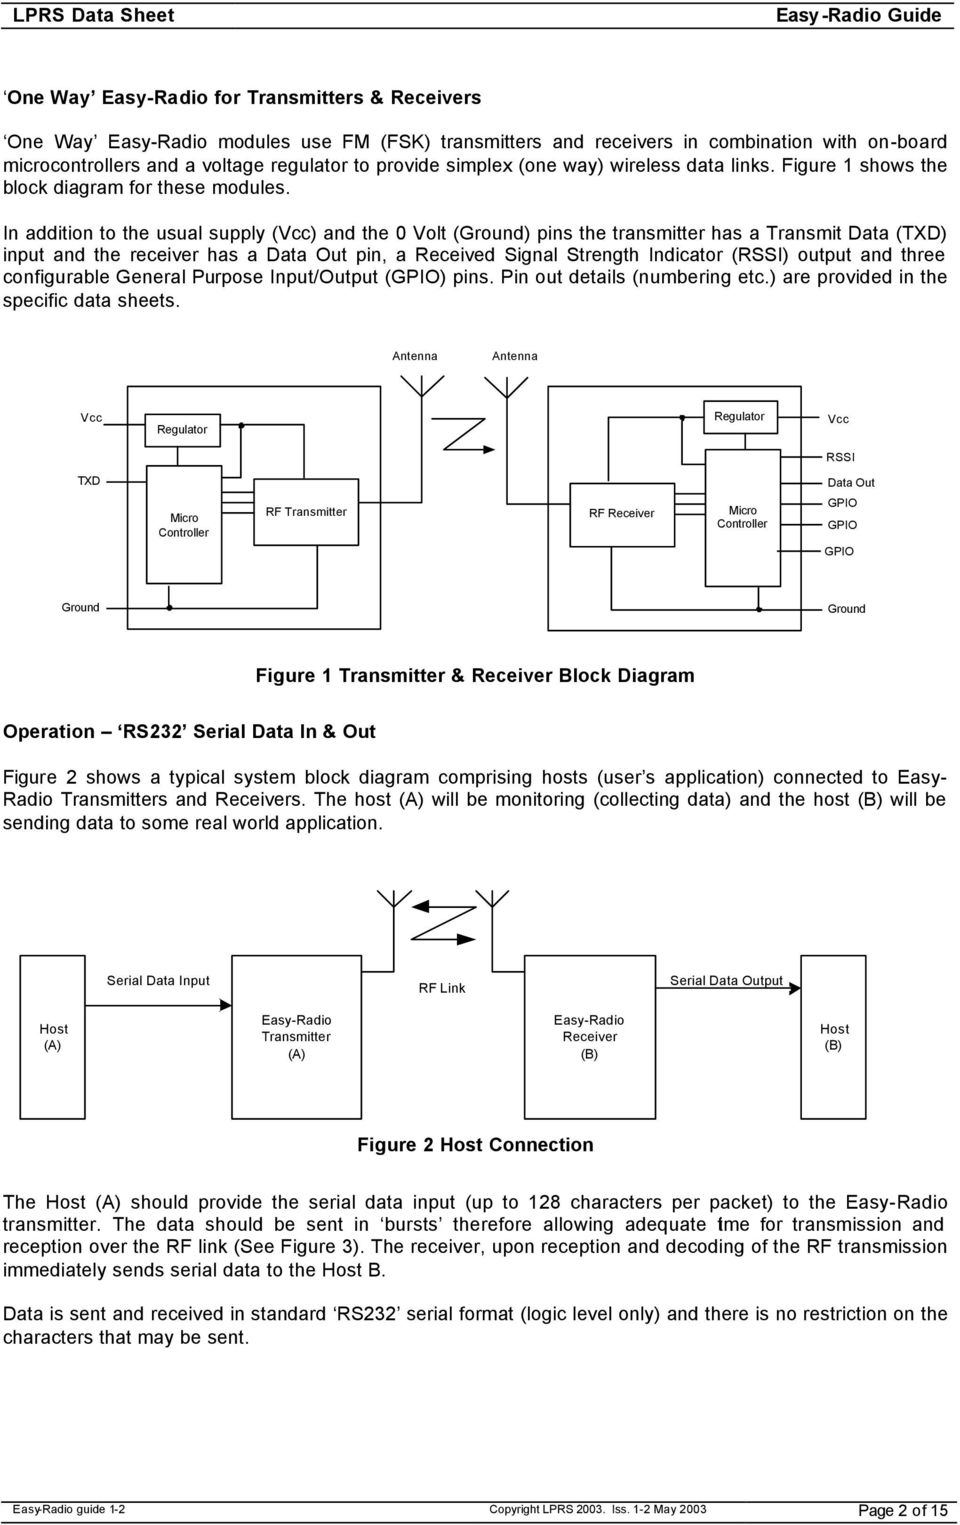 What Is Easy Radio Devices Covered Frequency Hopping Transceiver Figure 2 4 Fm Transmitter Block Diagram In Addition To The Usual Supply Vcc And 0 Volt Ground